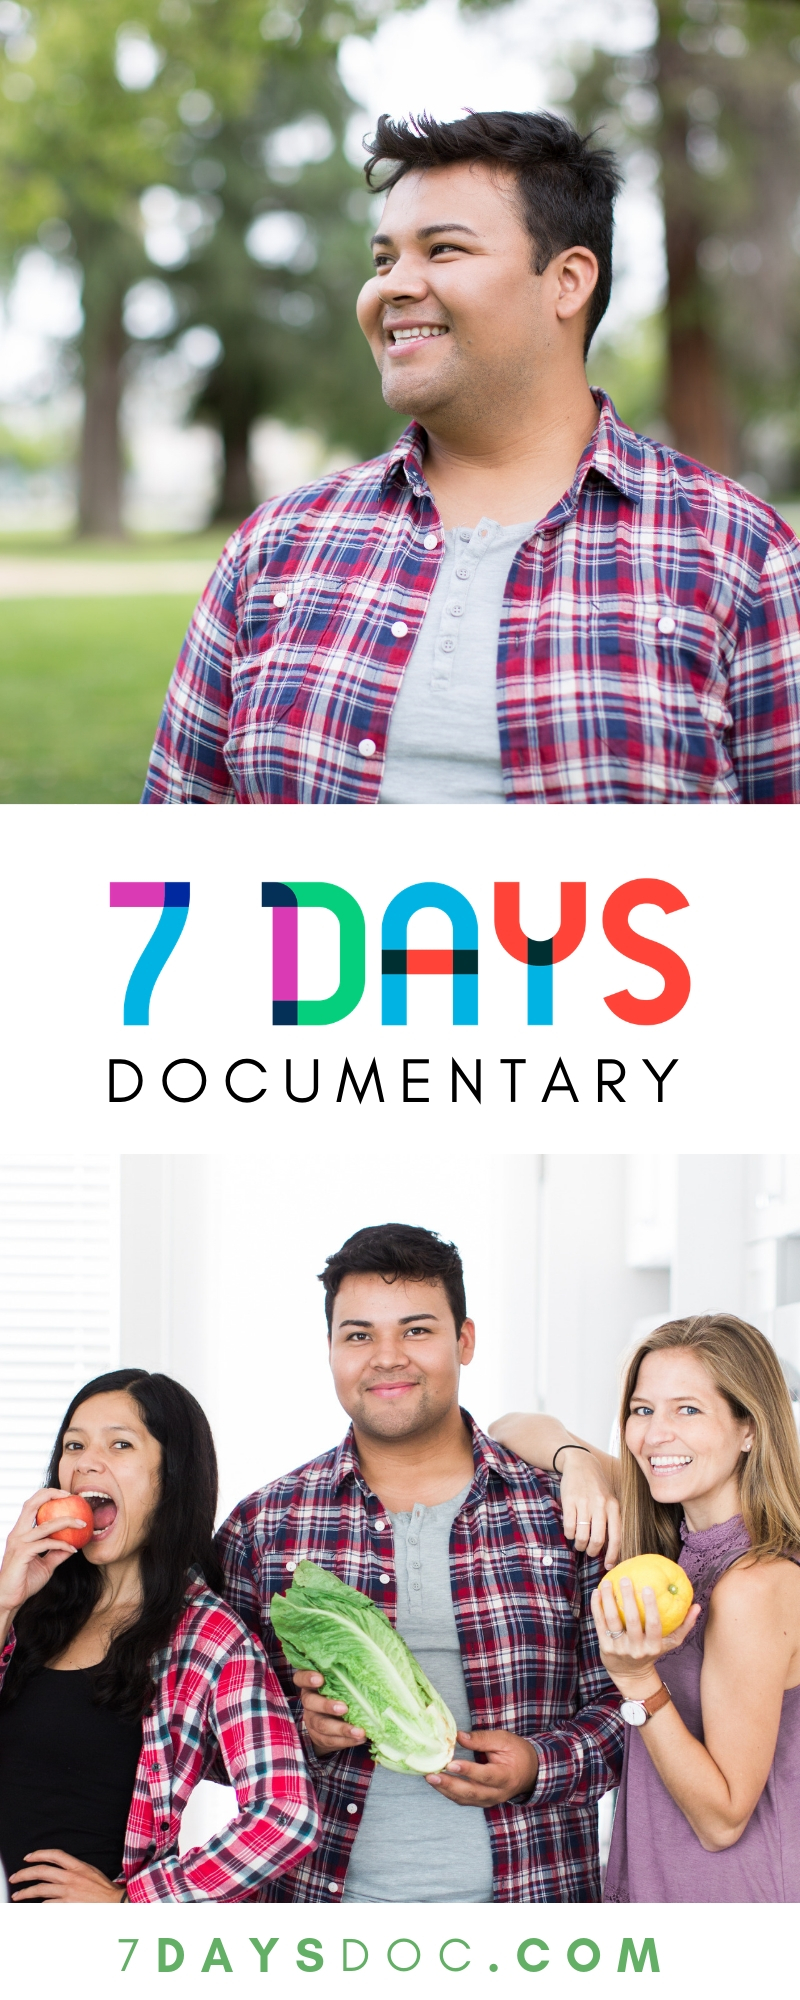 7 Days Documentary | 7 Days Vegan | WorldofVegan.com